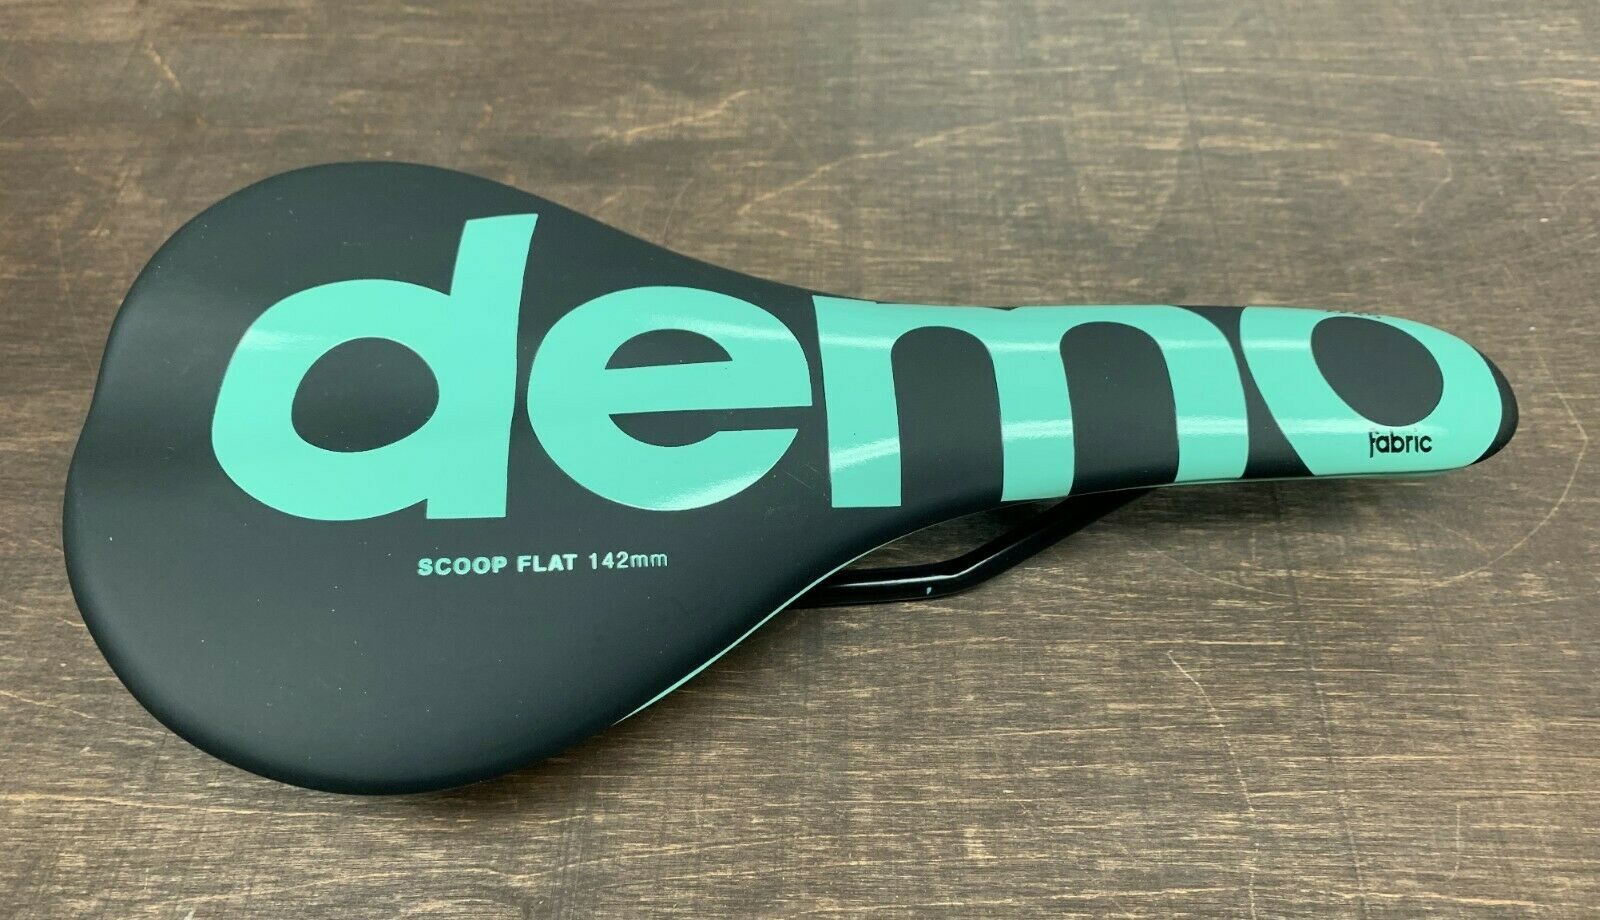 Fabric Scoop Flat  142 mm Demo Saddle  100% brand new with original quality